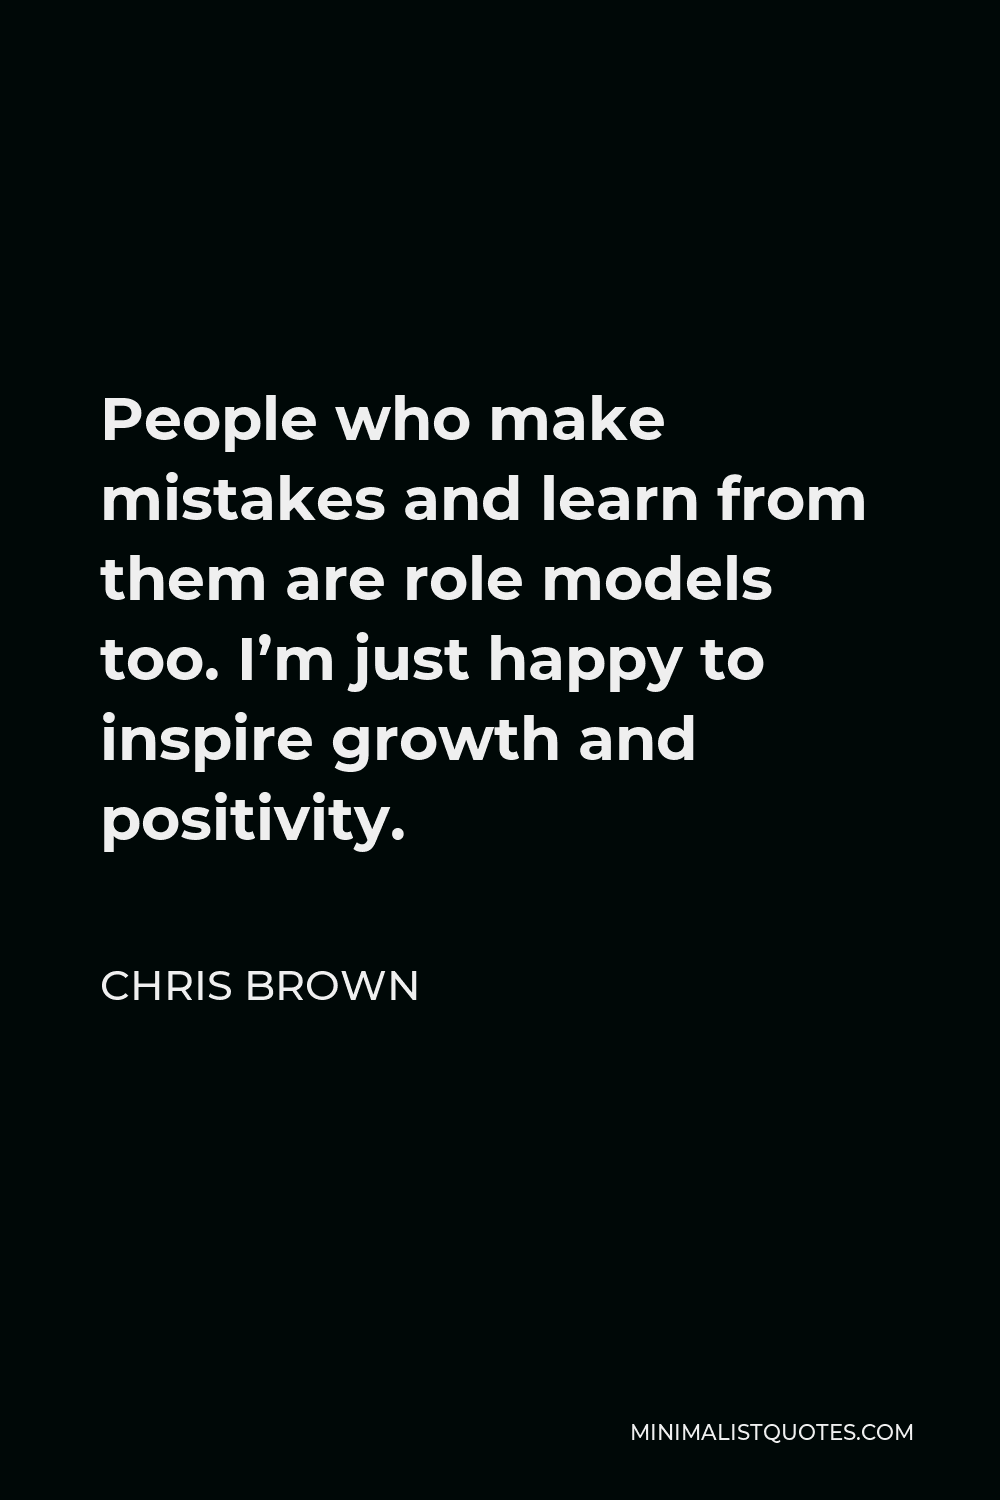 Chris Brown Quote - People who make mistakes and learn from them are role models too. I'm just happy to inspire growth and positivity.